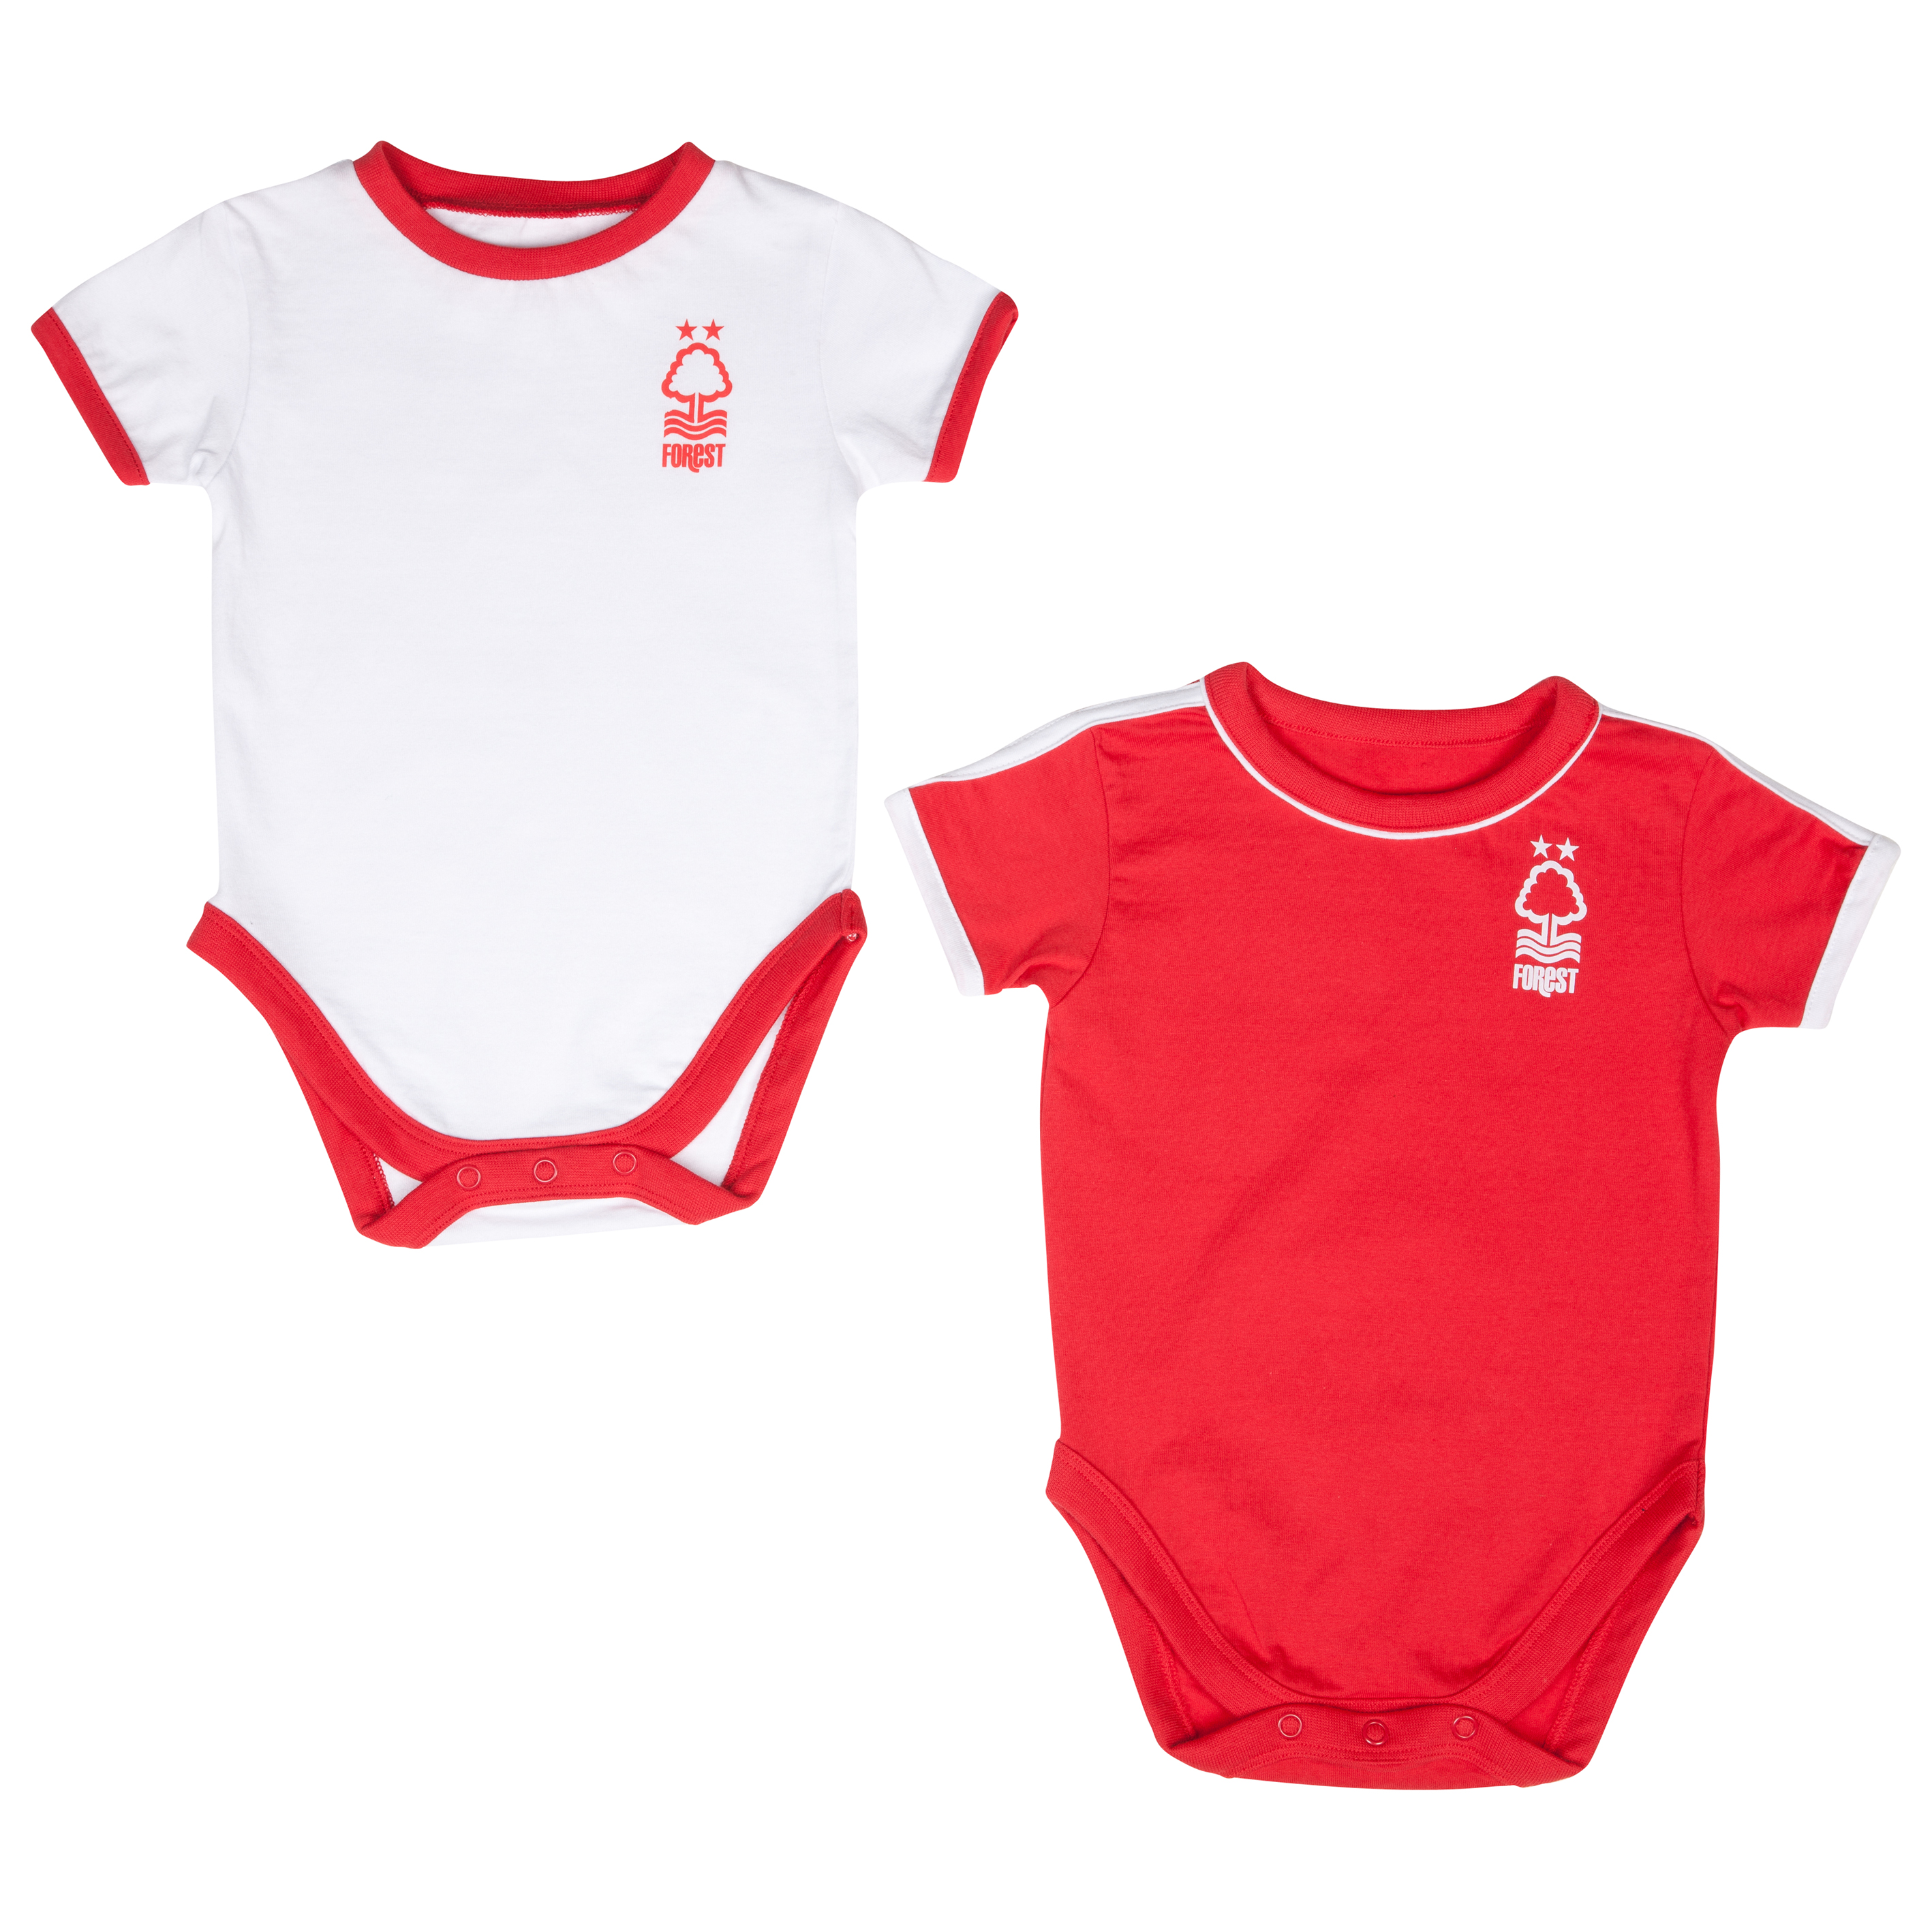 Nottingham Forest 12/14 Kit Pack of 2 Bodysuits - Red/White - Baby